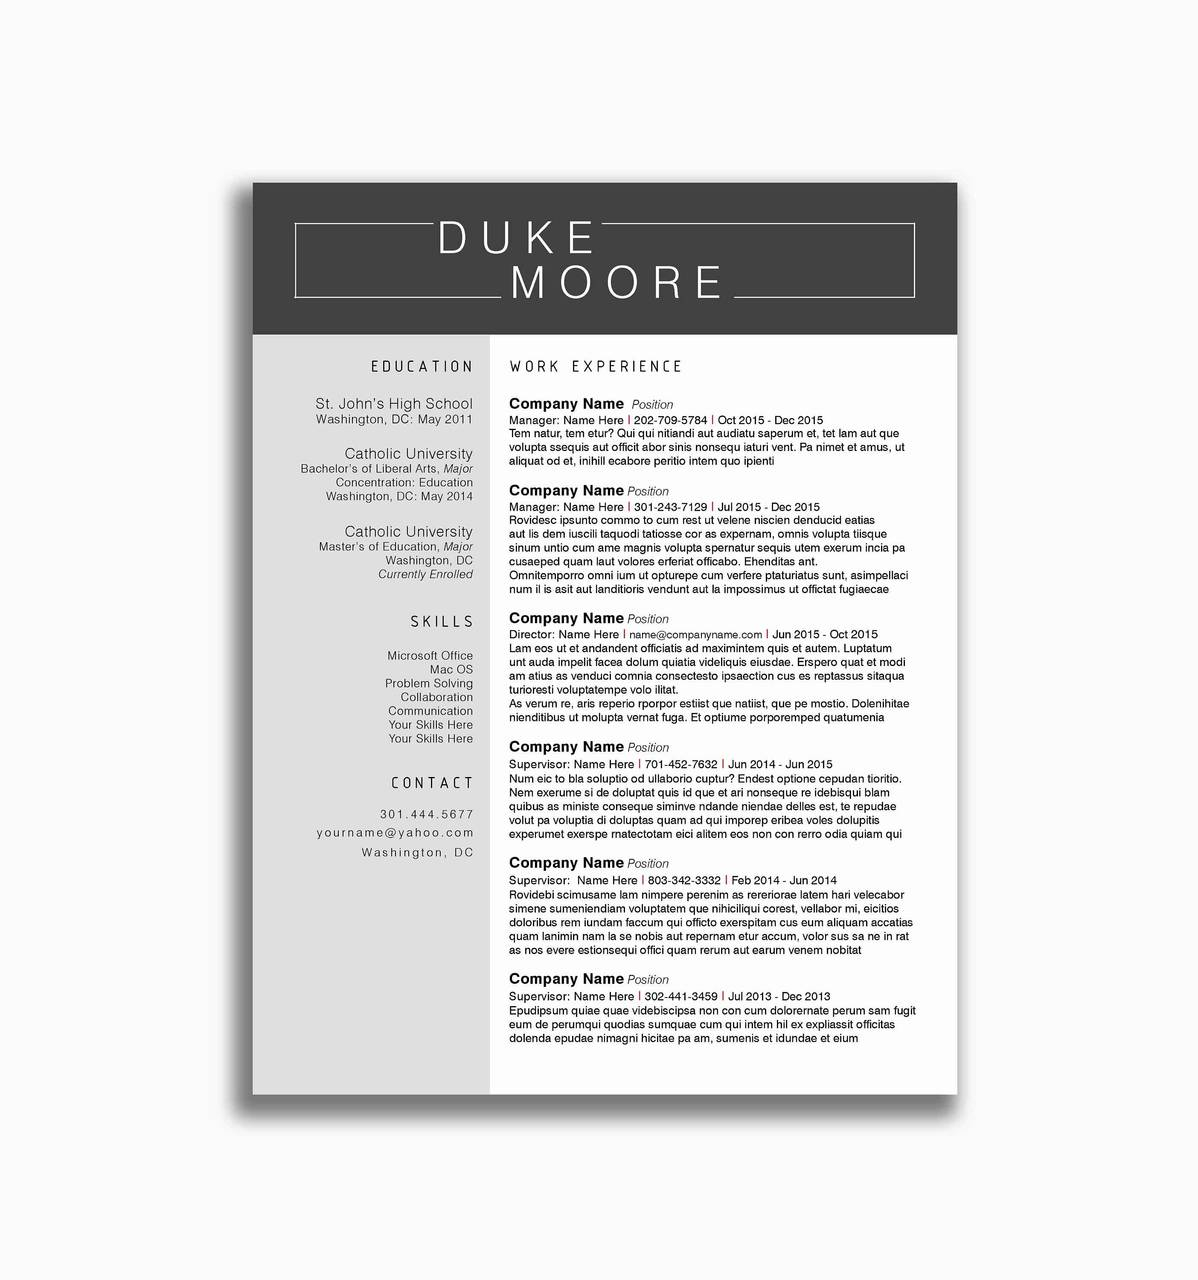 resume template for maintenance position Collection-Free Sample Resume For Maintenance Worker Amazing Cv Resume Sample Word Best Resume Template Free Word New Od 18-h